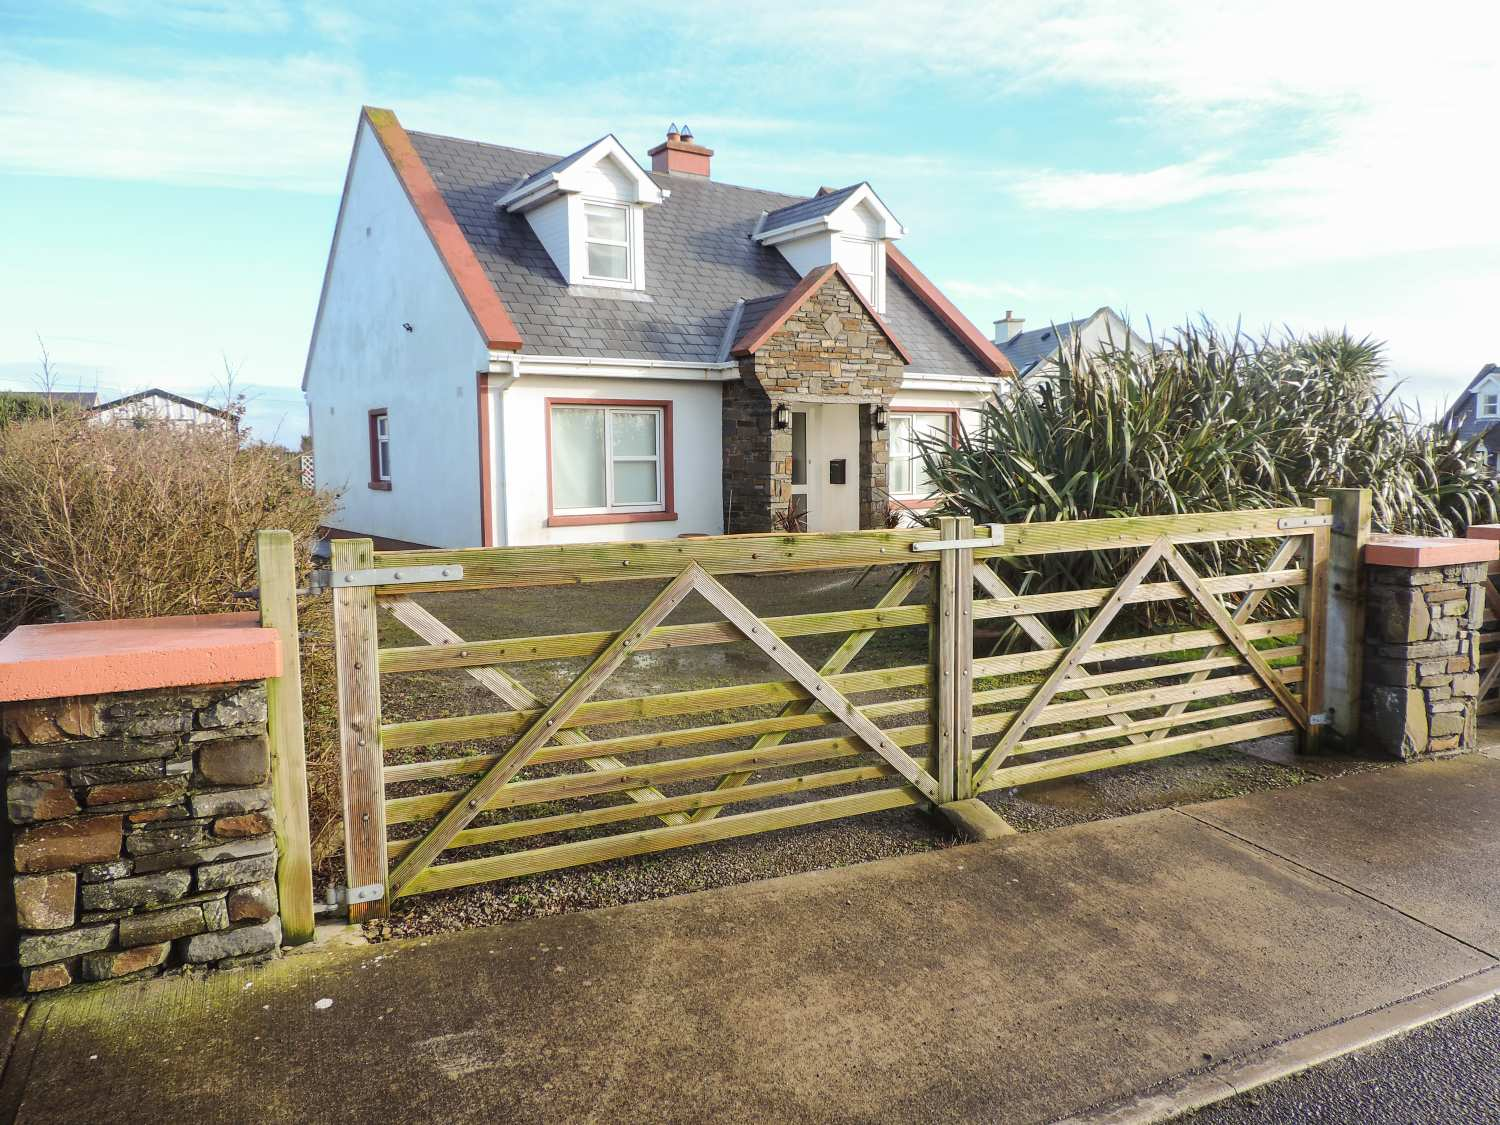 7 Rinevella View - County Clare - 937587 - photo 1